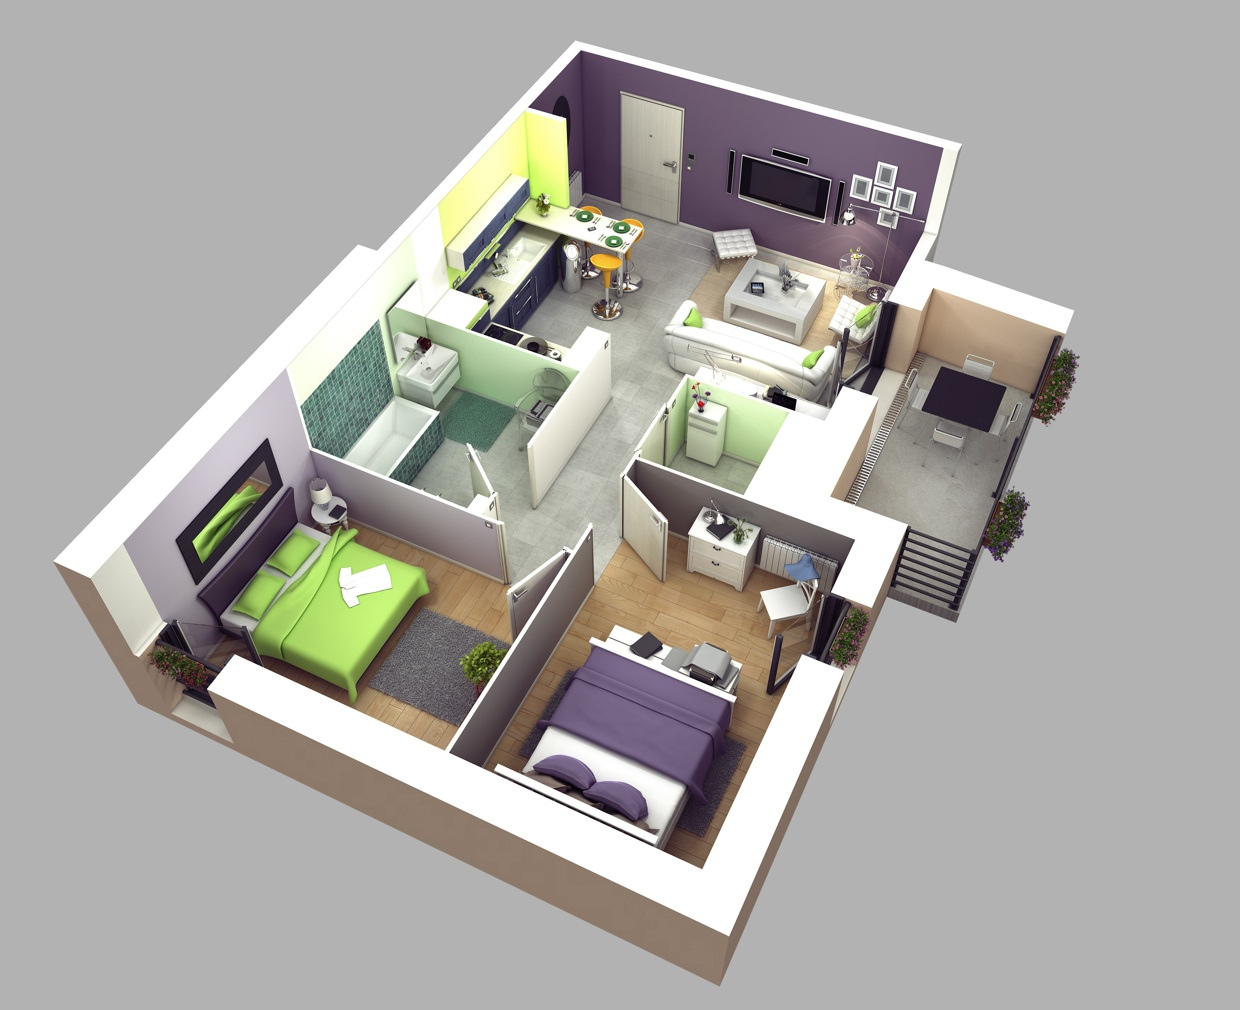 2 bedroom apartmenthouse plans - Small Designs 2